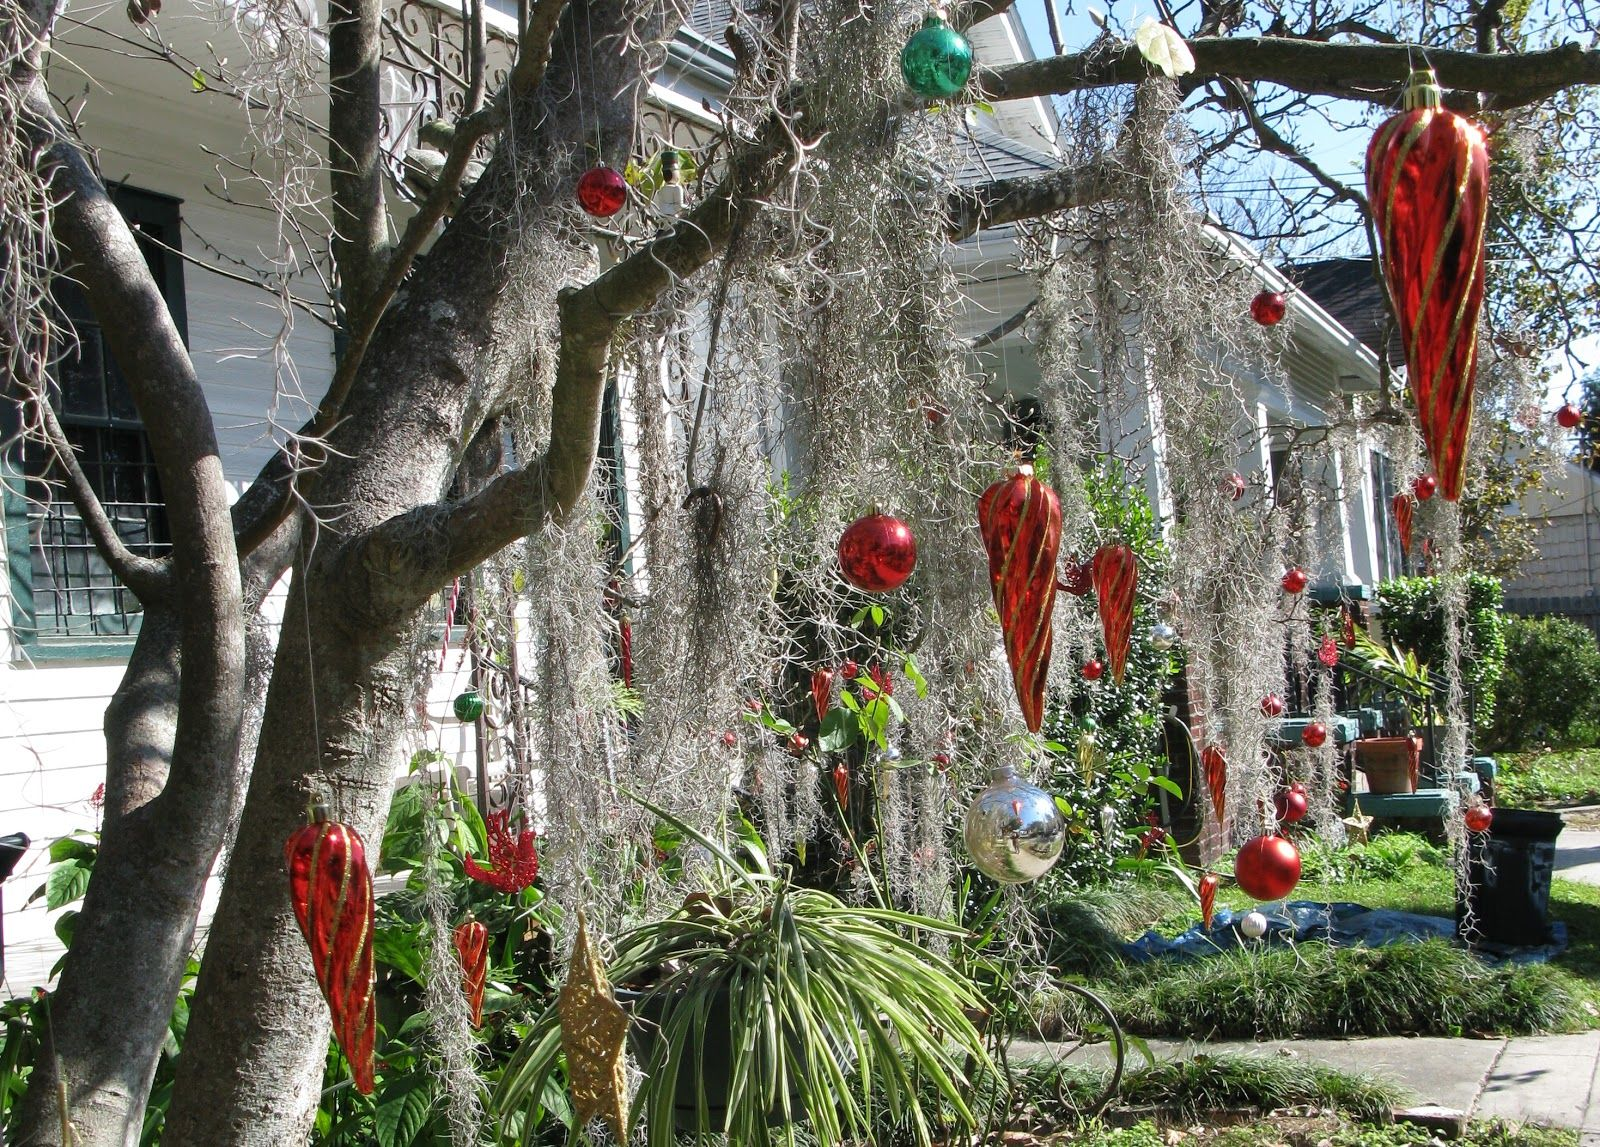 New Orleans Christmas Decorations | always thought it was so cool to hang Christmas ornaments in the ...